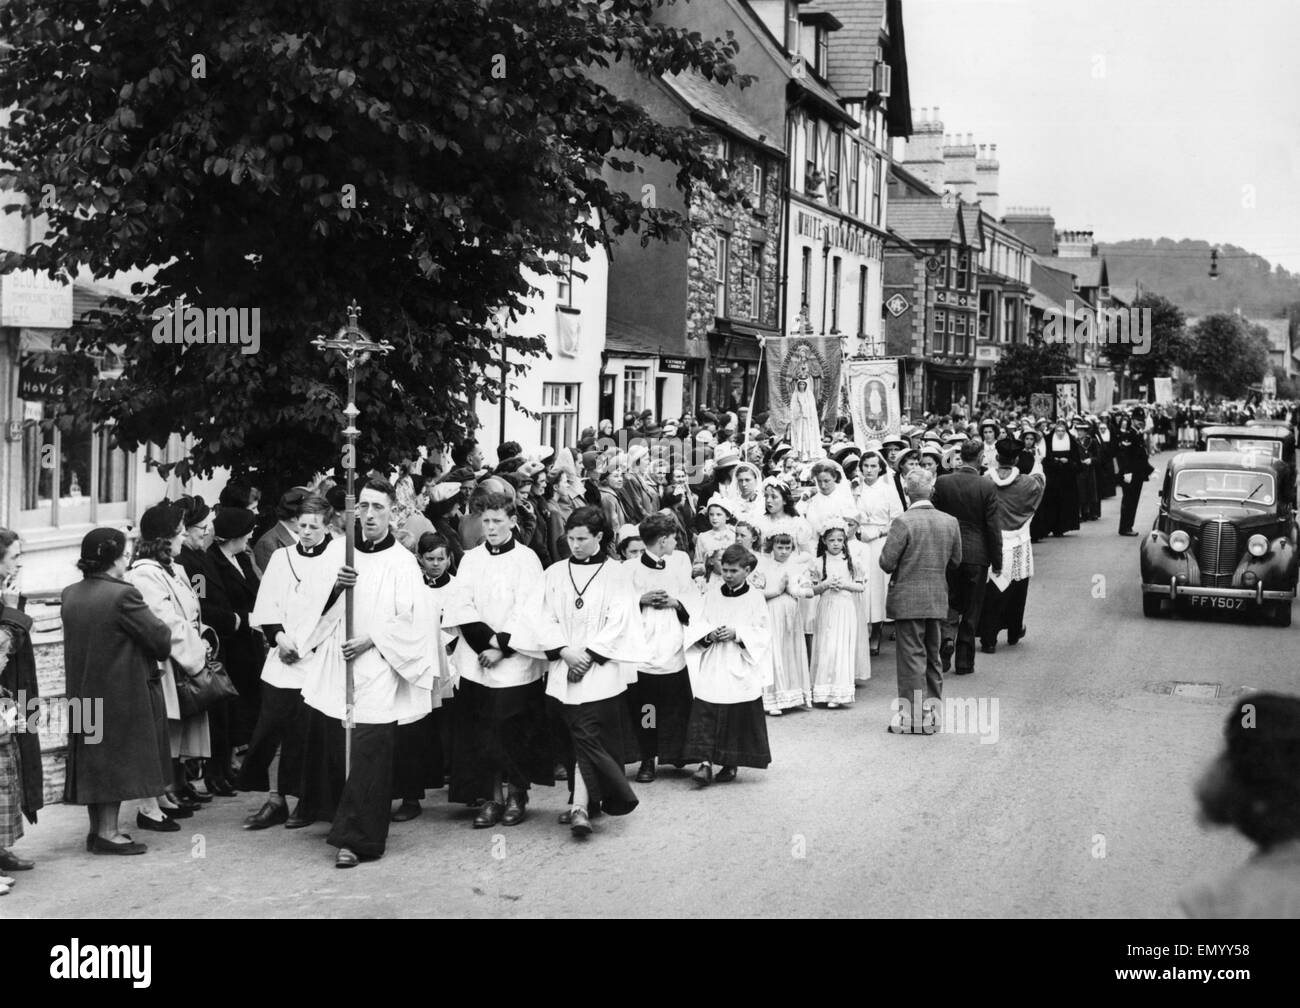 Over 20,000 pilgrims from England, Wales and Ireland Congregate at Bala in Wales for the pilgrimage. Some of the - Stock Image